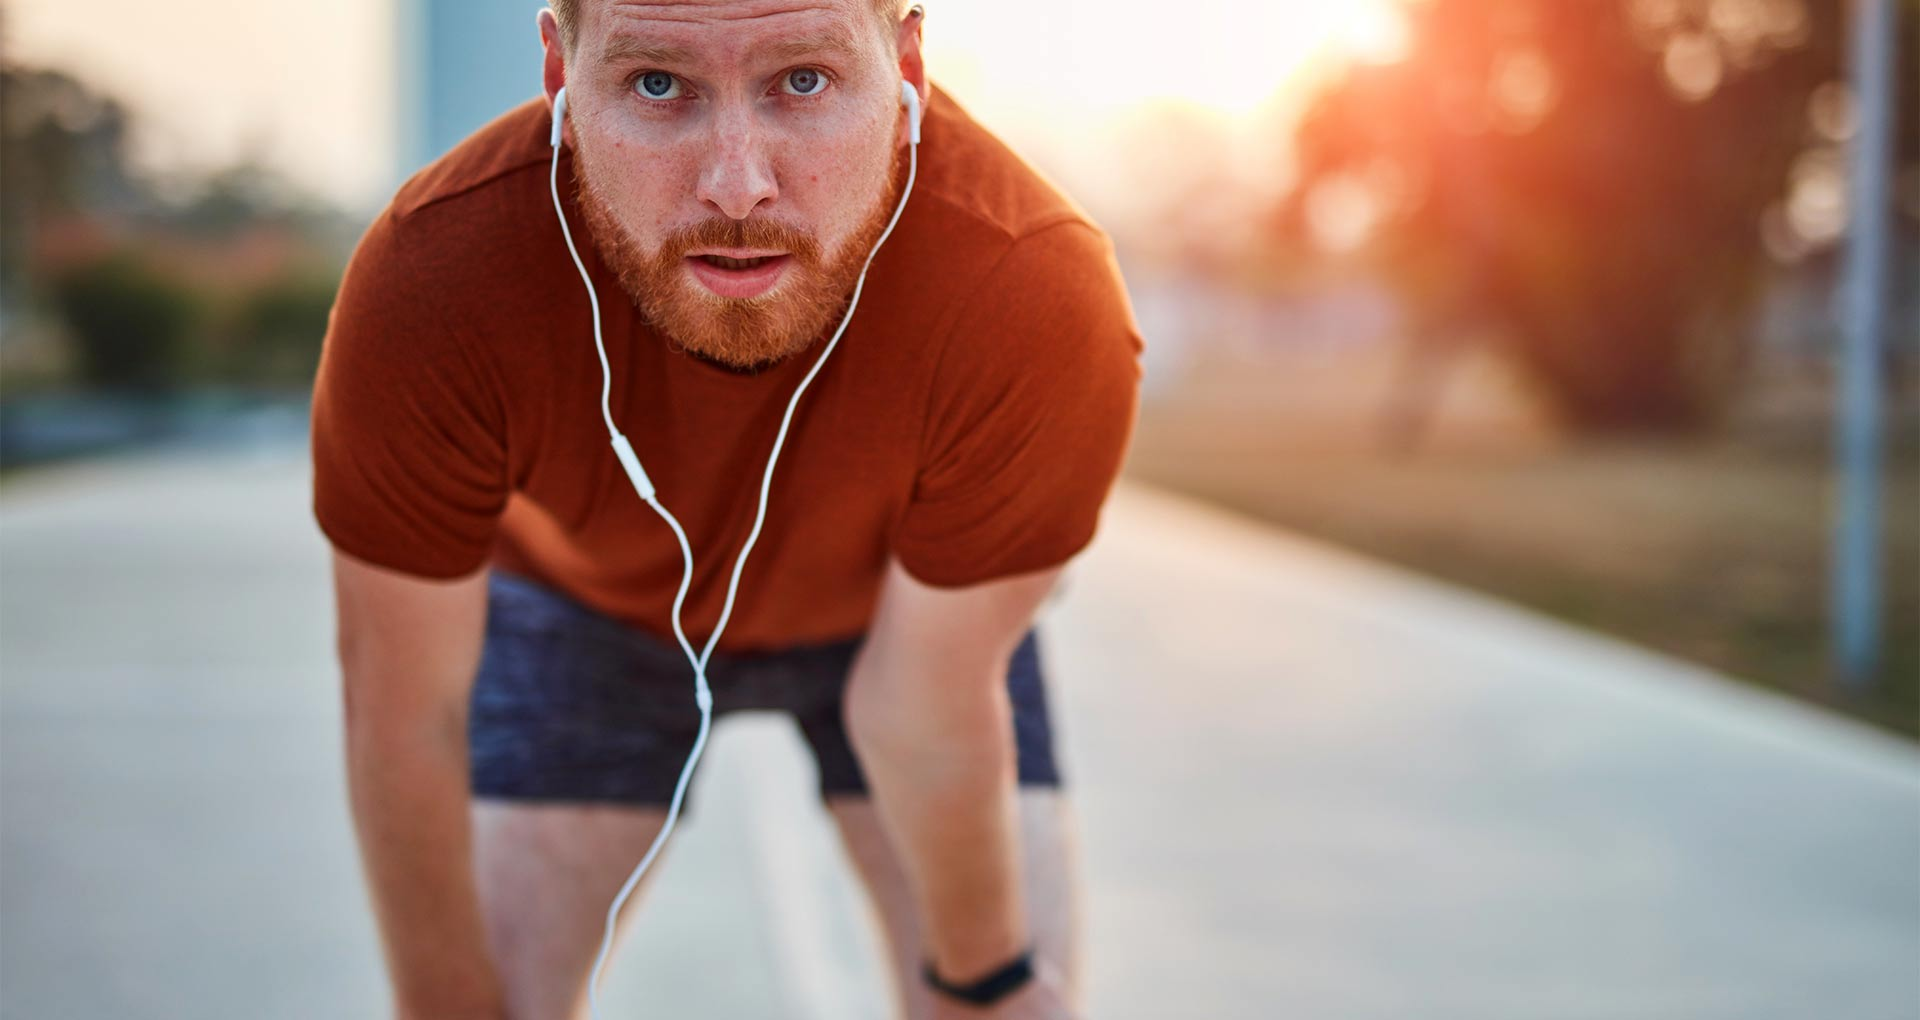 CAN LISTENING TO MUSIC IMPROVE YOUR WORKOUT?